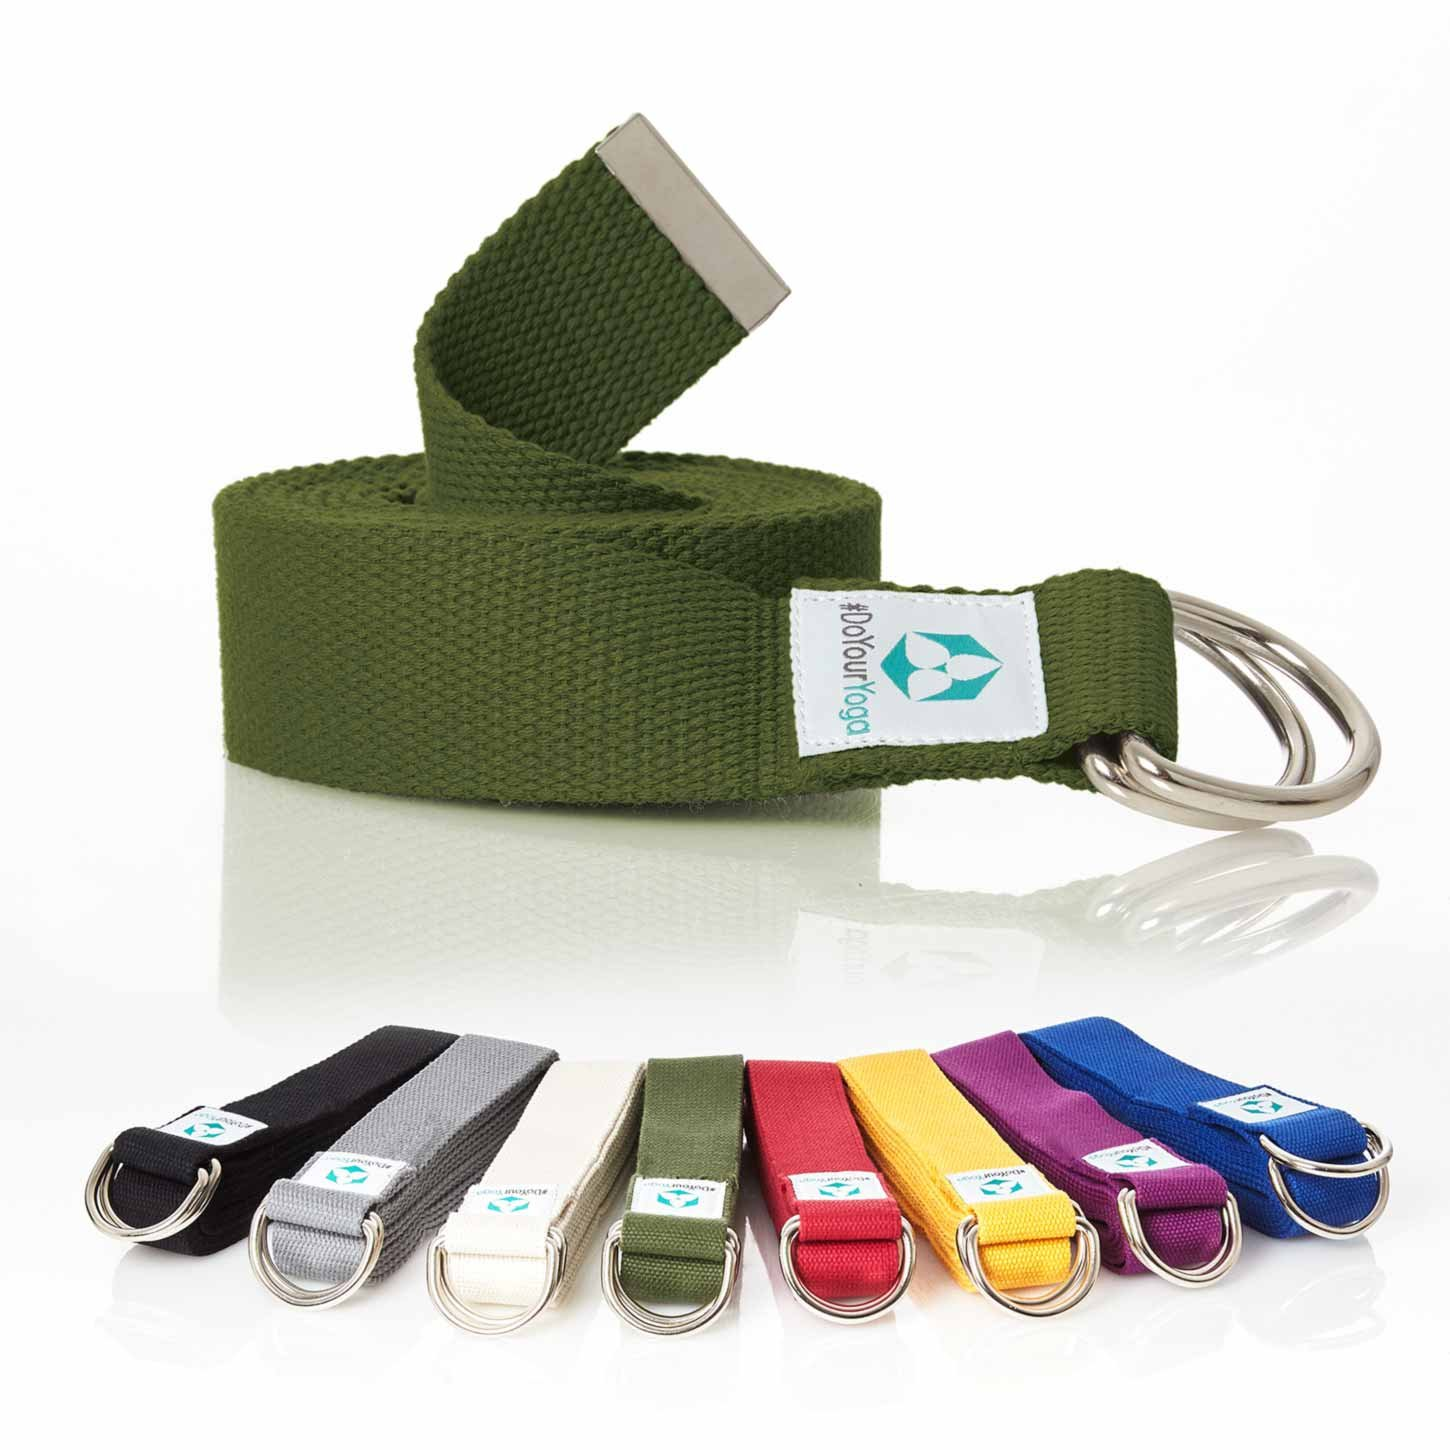 'Madira Yoga Belt/Yoga Strap/Yoga Belt Strap 100% Cotton Sturdy Metal Loop Closure/250 x 3.8 cm/Available in different colours #doyoursports GmbH